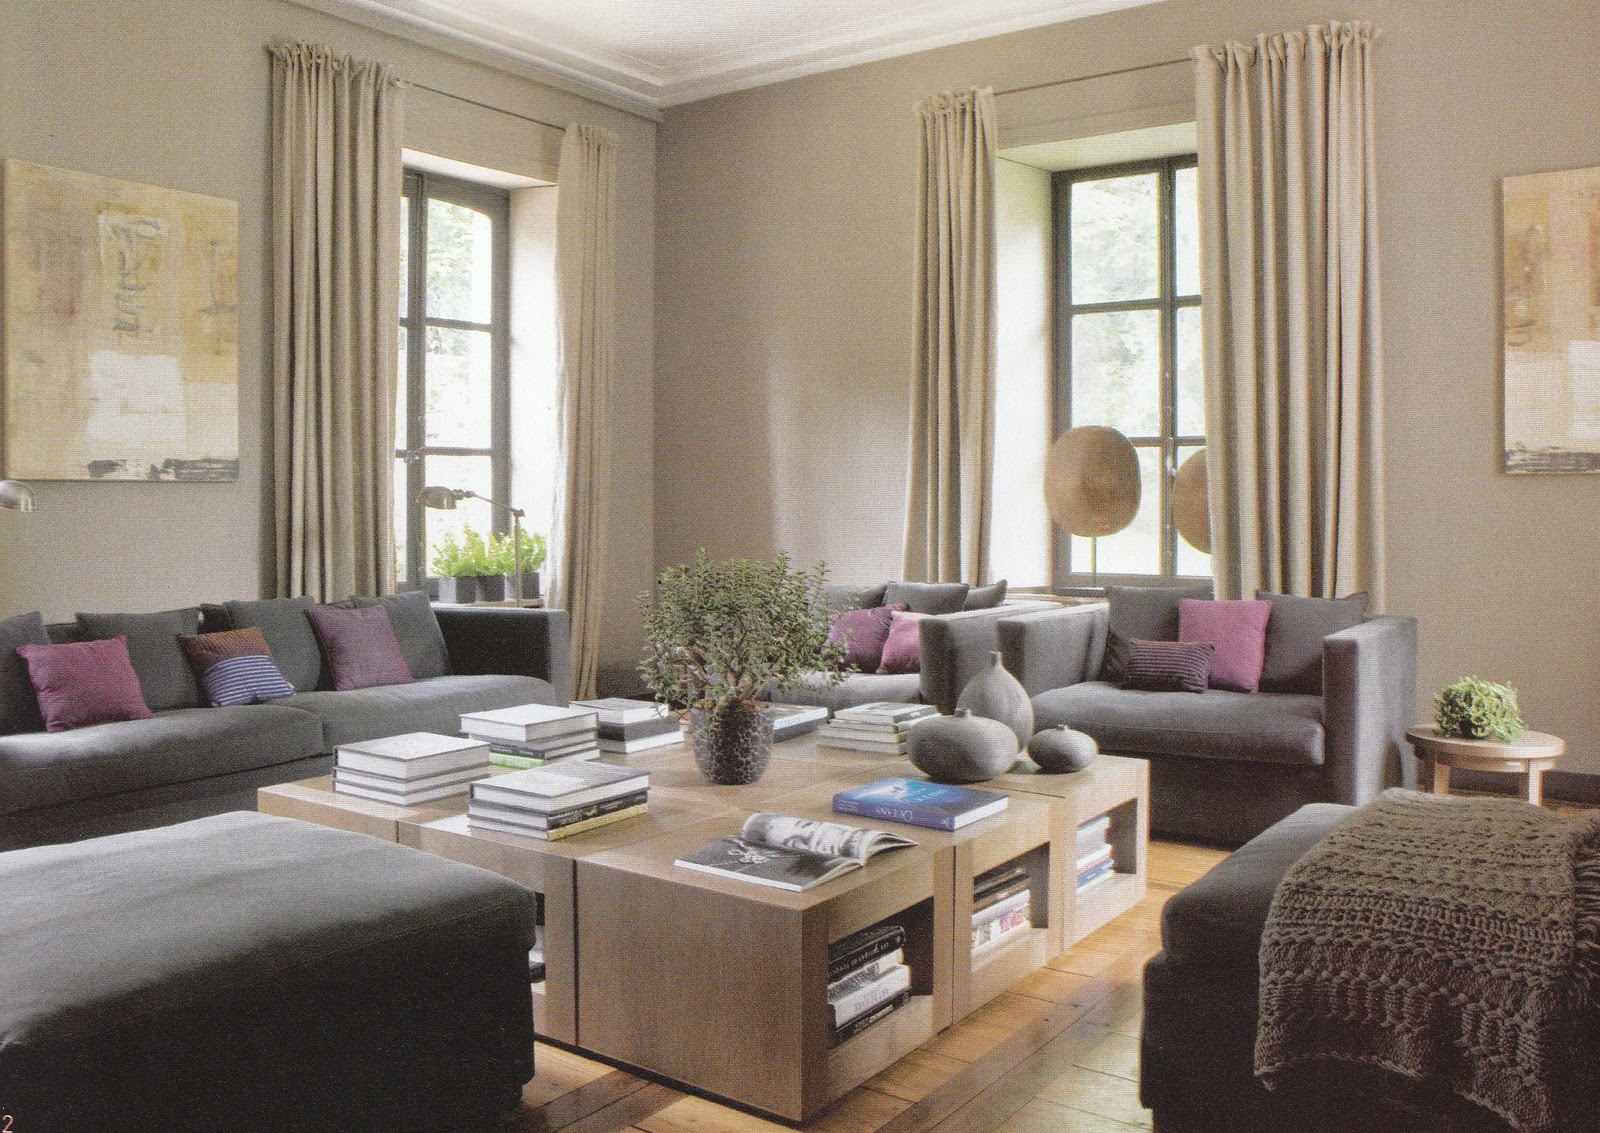 isabelle h d coration et home staging novembre 2011. Black Bedroom Furniture Sets. Home Design Ideas